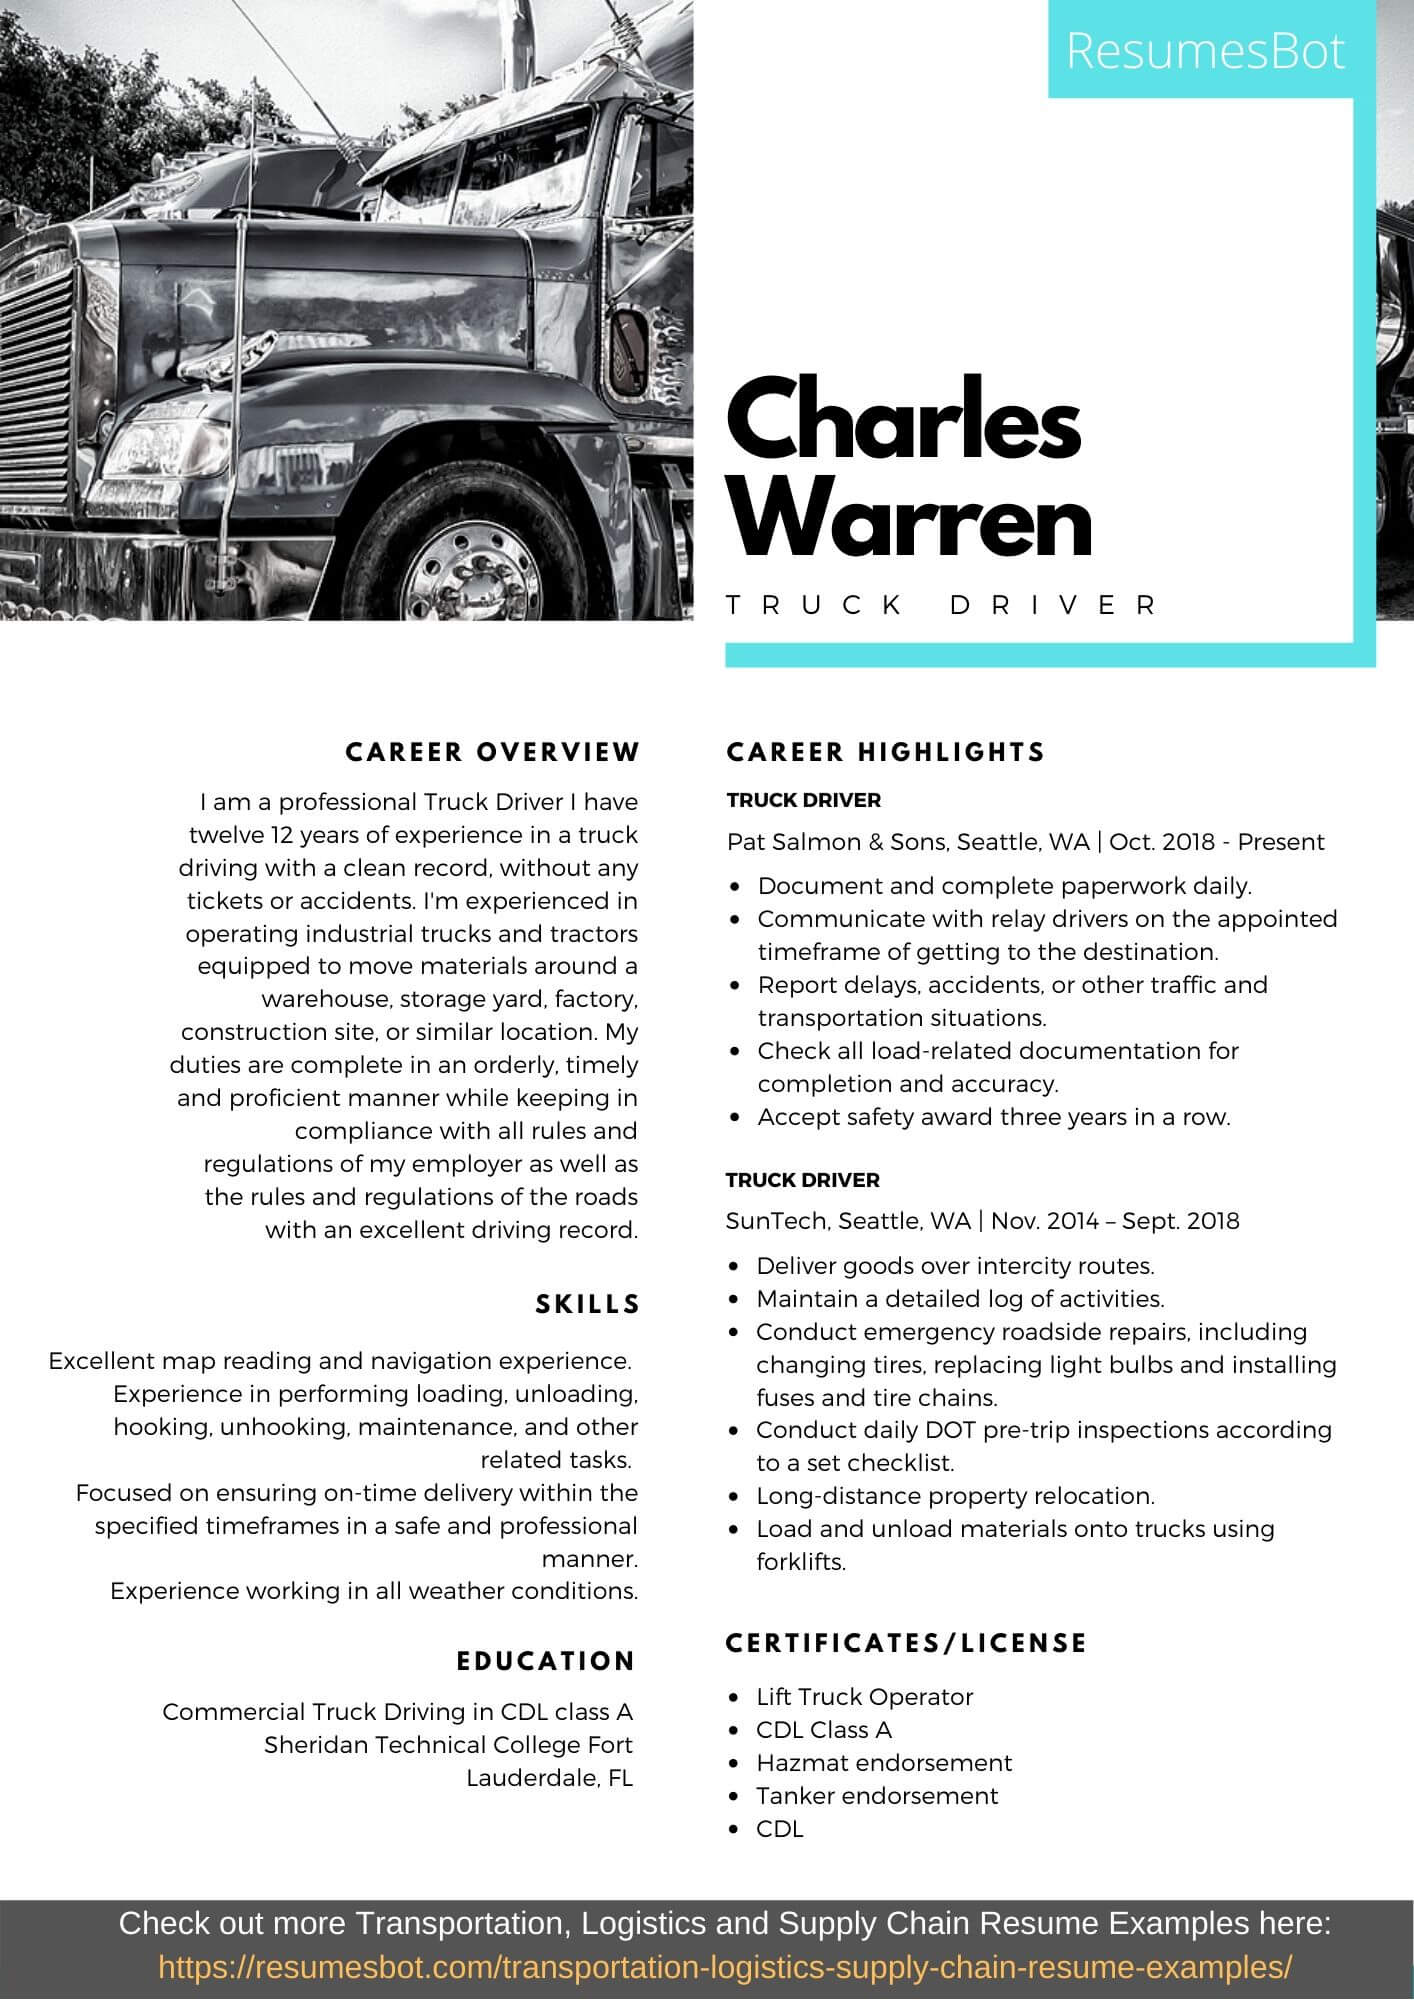 truck driver resume samples and tips  pdf doc